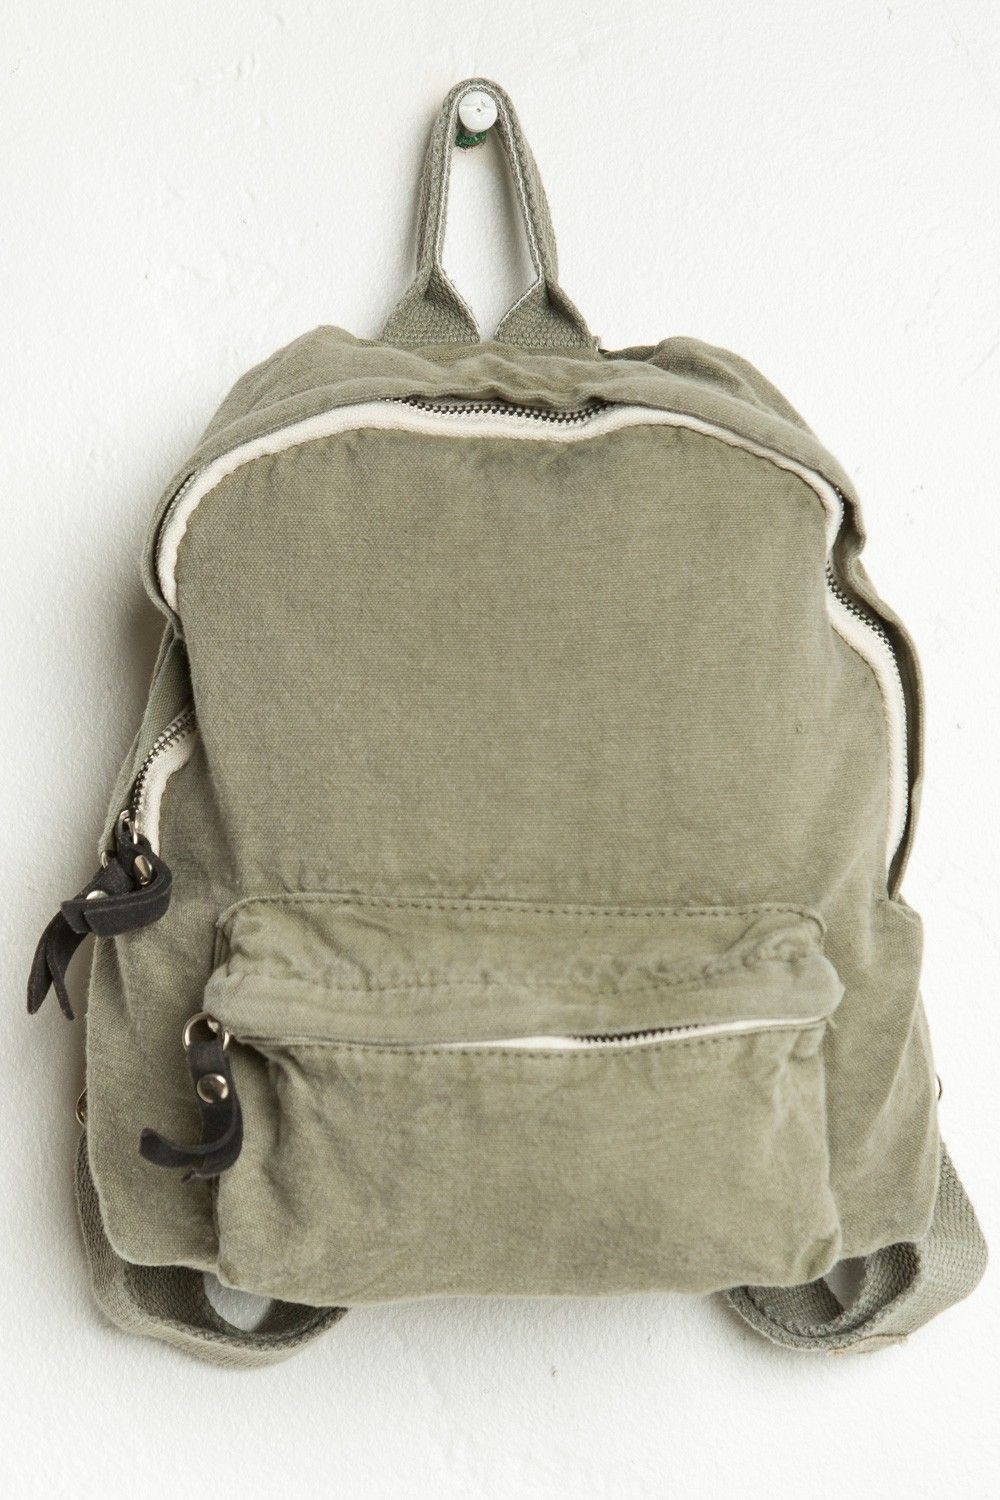 899933fbc8 Brandy ♥ Melville | John Galt Mini Backpack - Backpacks - Accessories